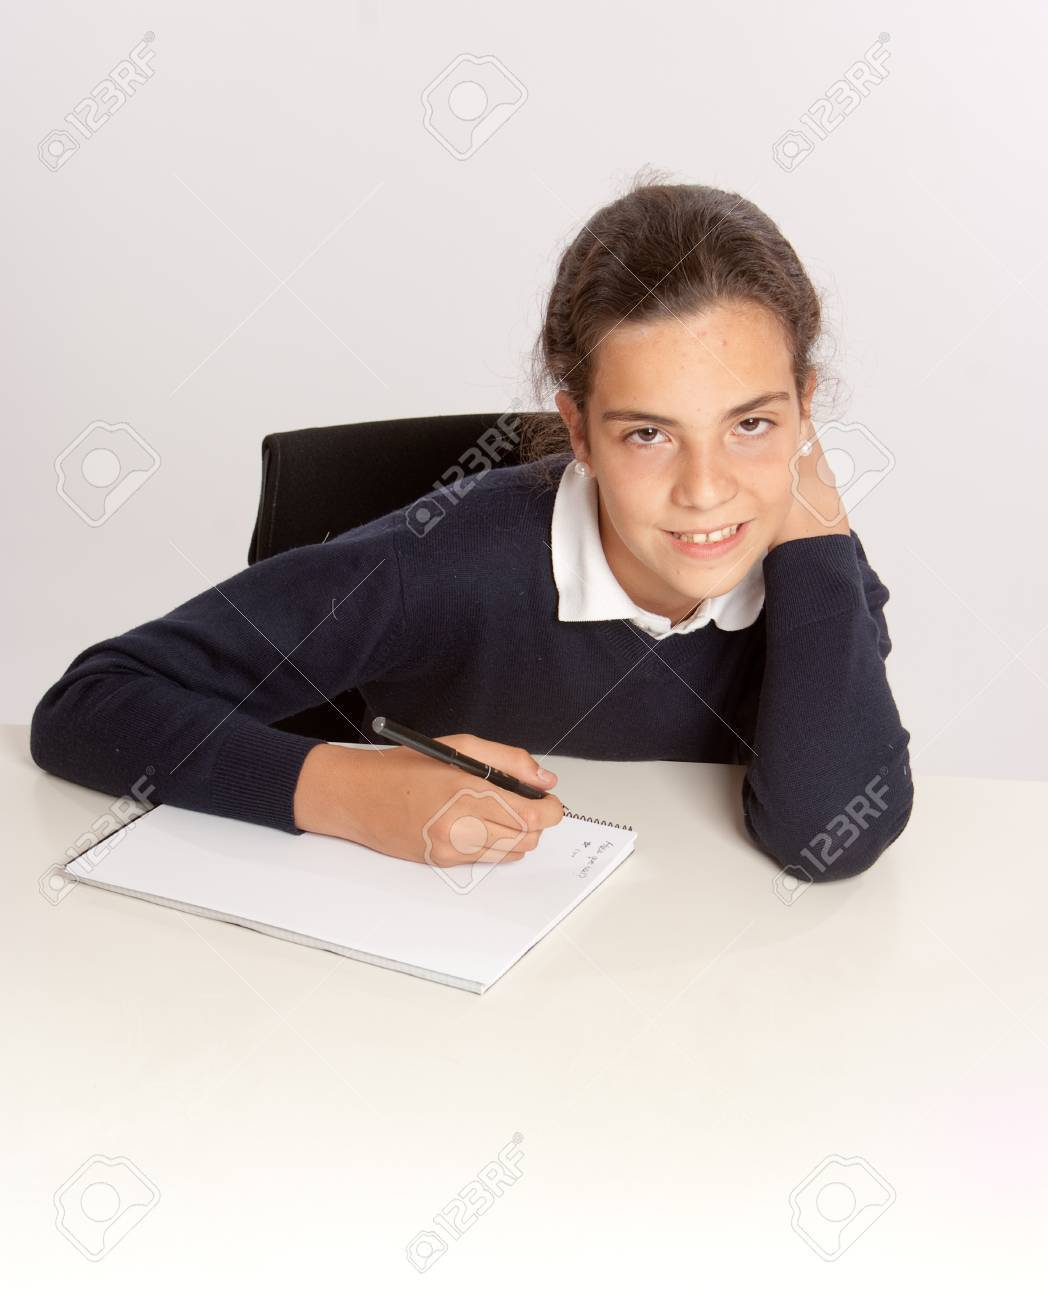 Schoolgirl writing at her desk with a happy expression Stock Photo - 11727619